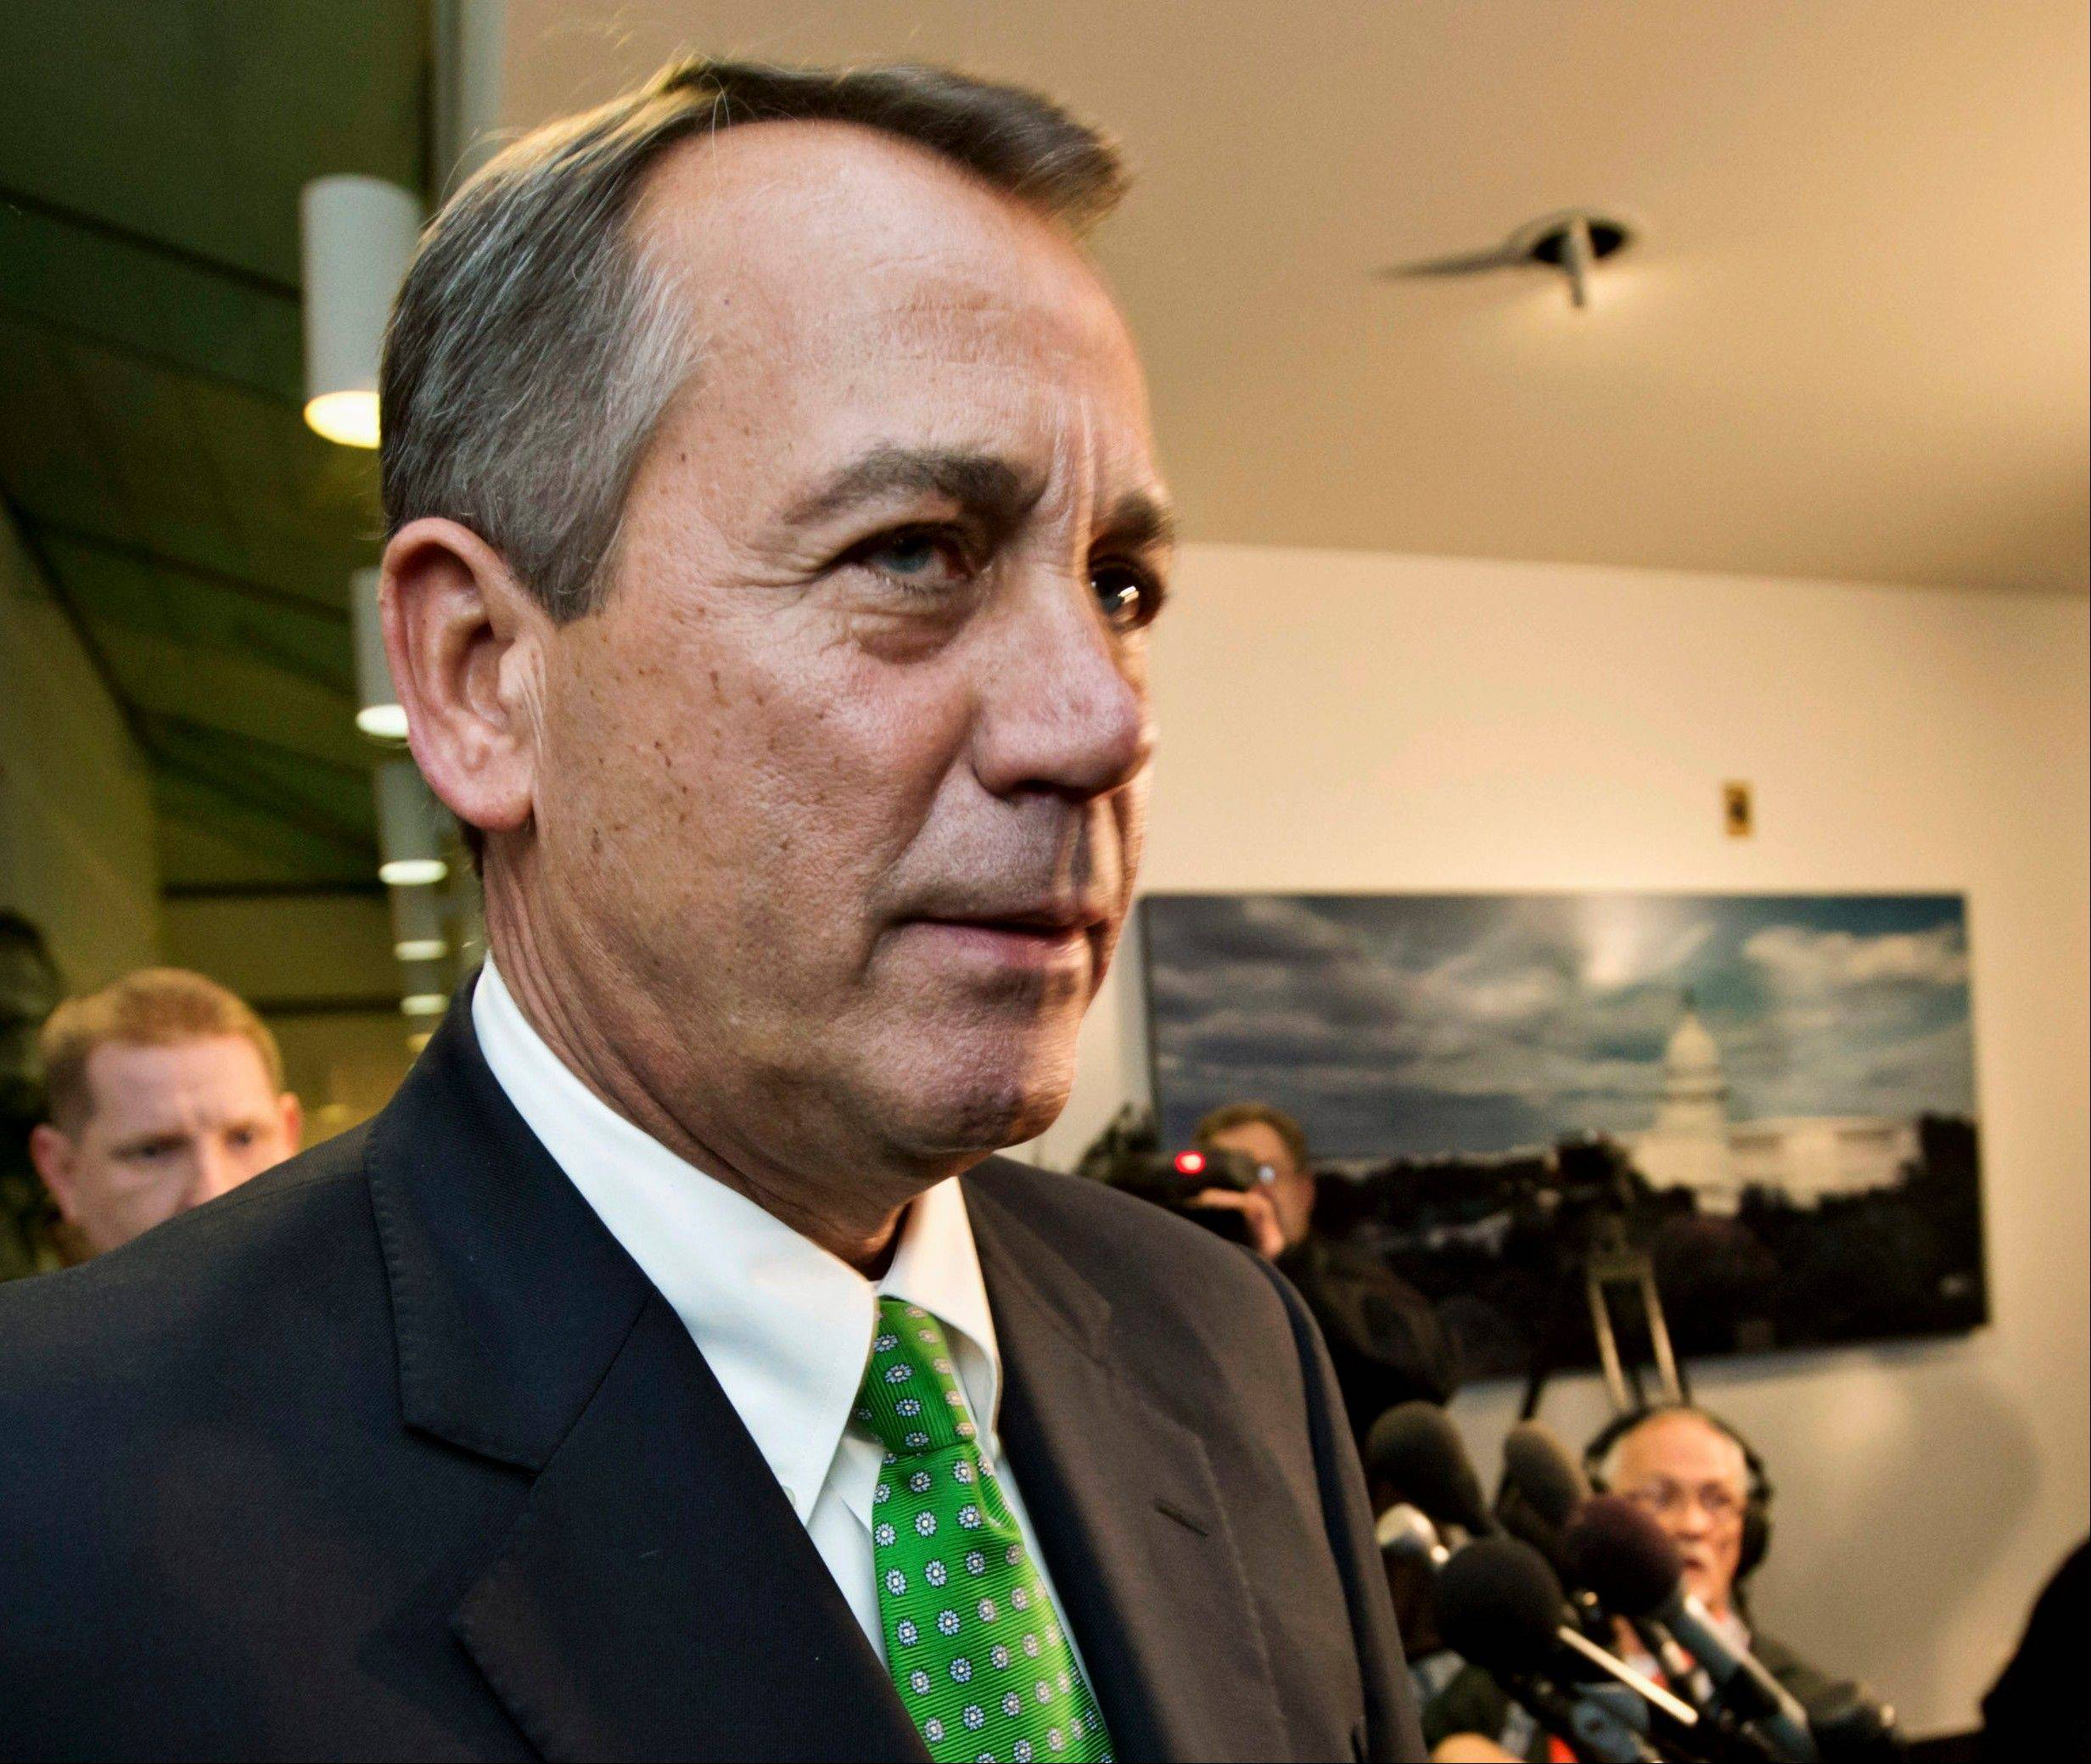 Associated Press/Jan. 1, 2013 House Speaker John Boehner of Ohio and GOP-controlled House will vote next week to permit the government to borrow more money to meet its obligations, a move aimed at heading off a market-rattling confrontation with President Barack Obama over the so-called debt limit.